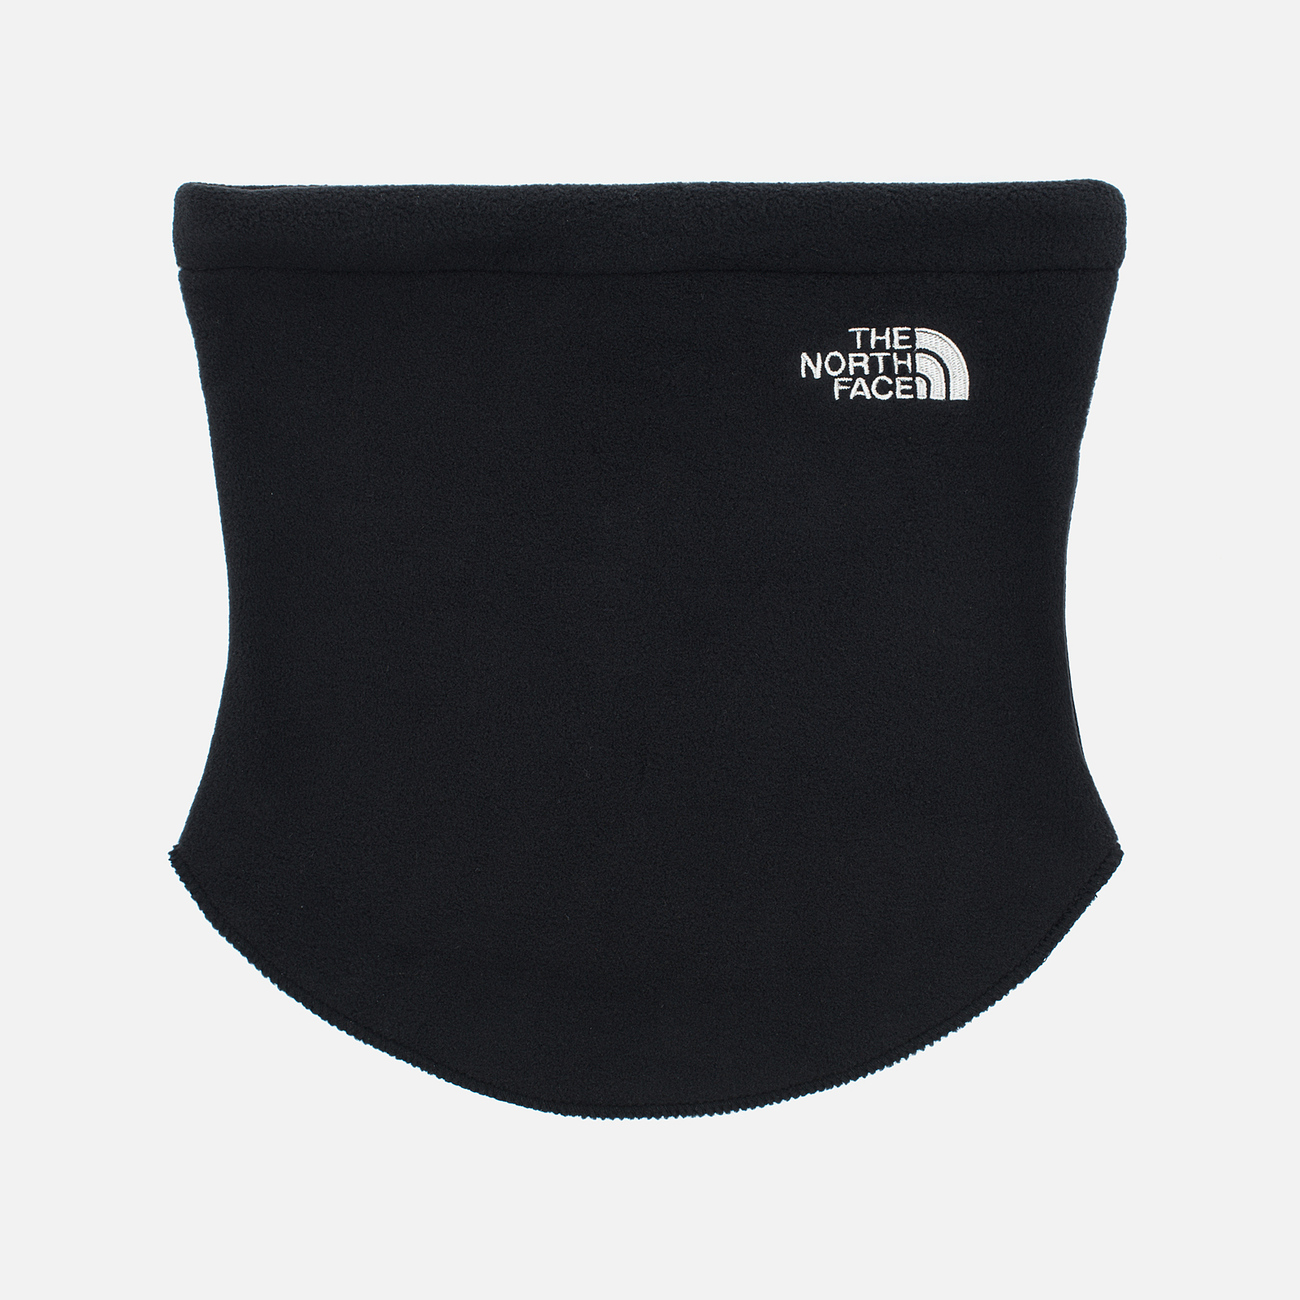 Шарф The North Face Neck Gaiter Black